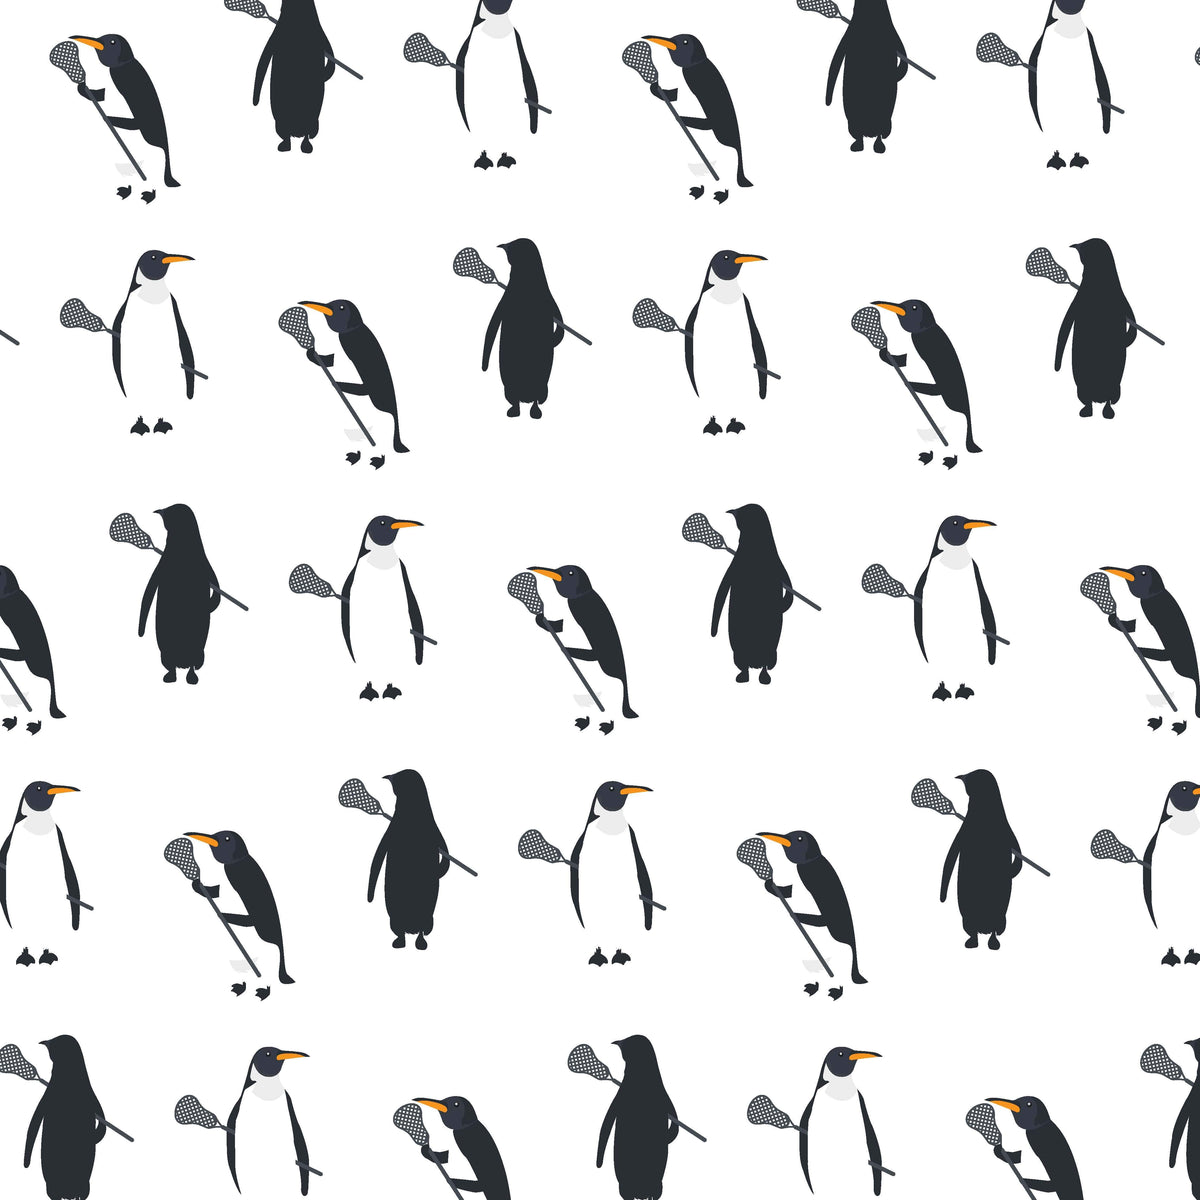 Penguins With Lacrosse Sticks Lacrosse Shorts